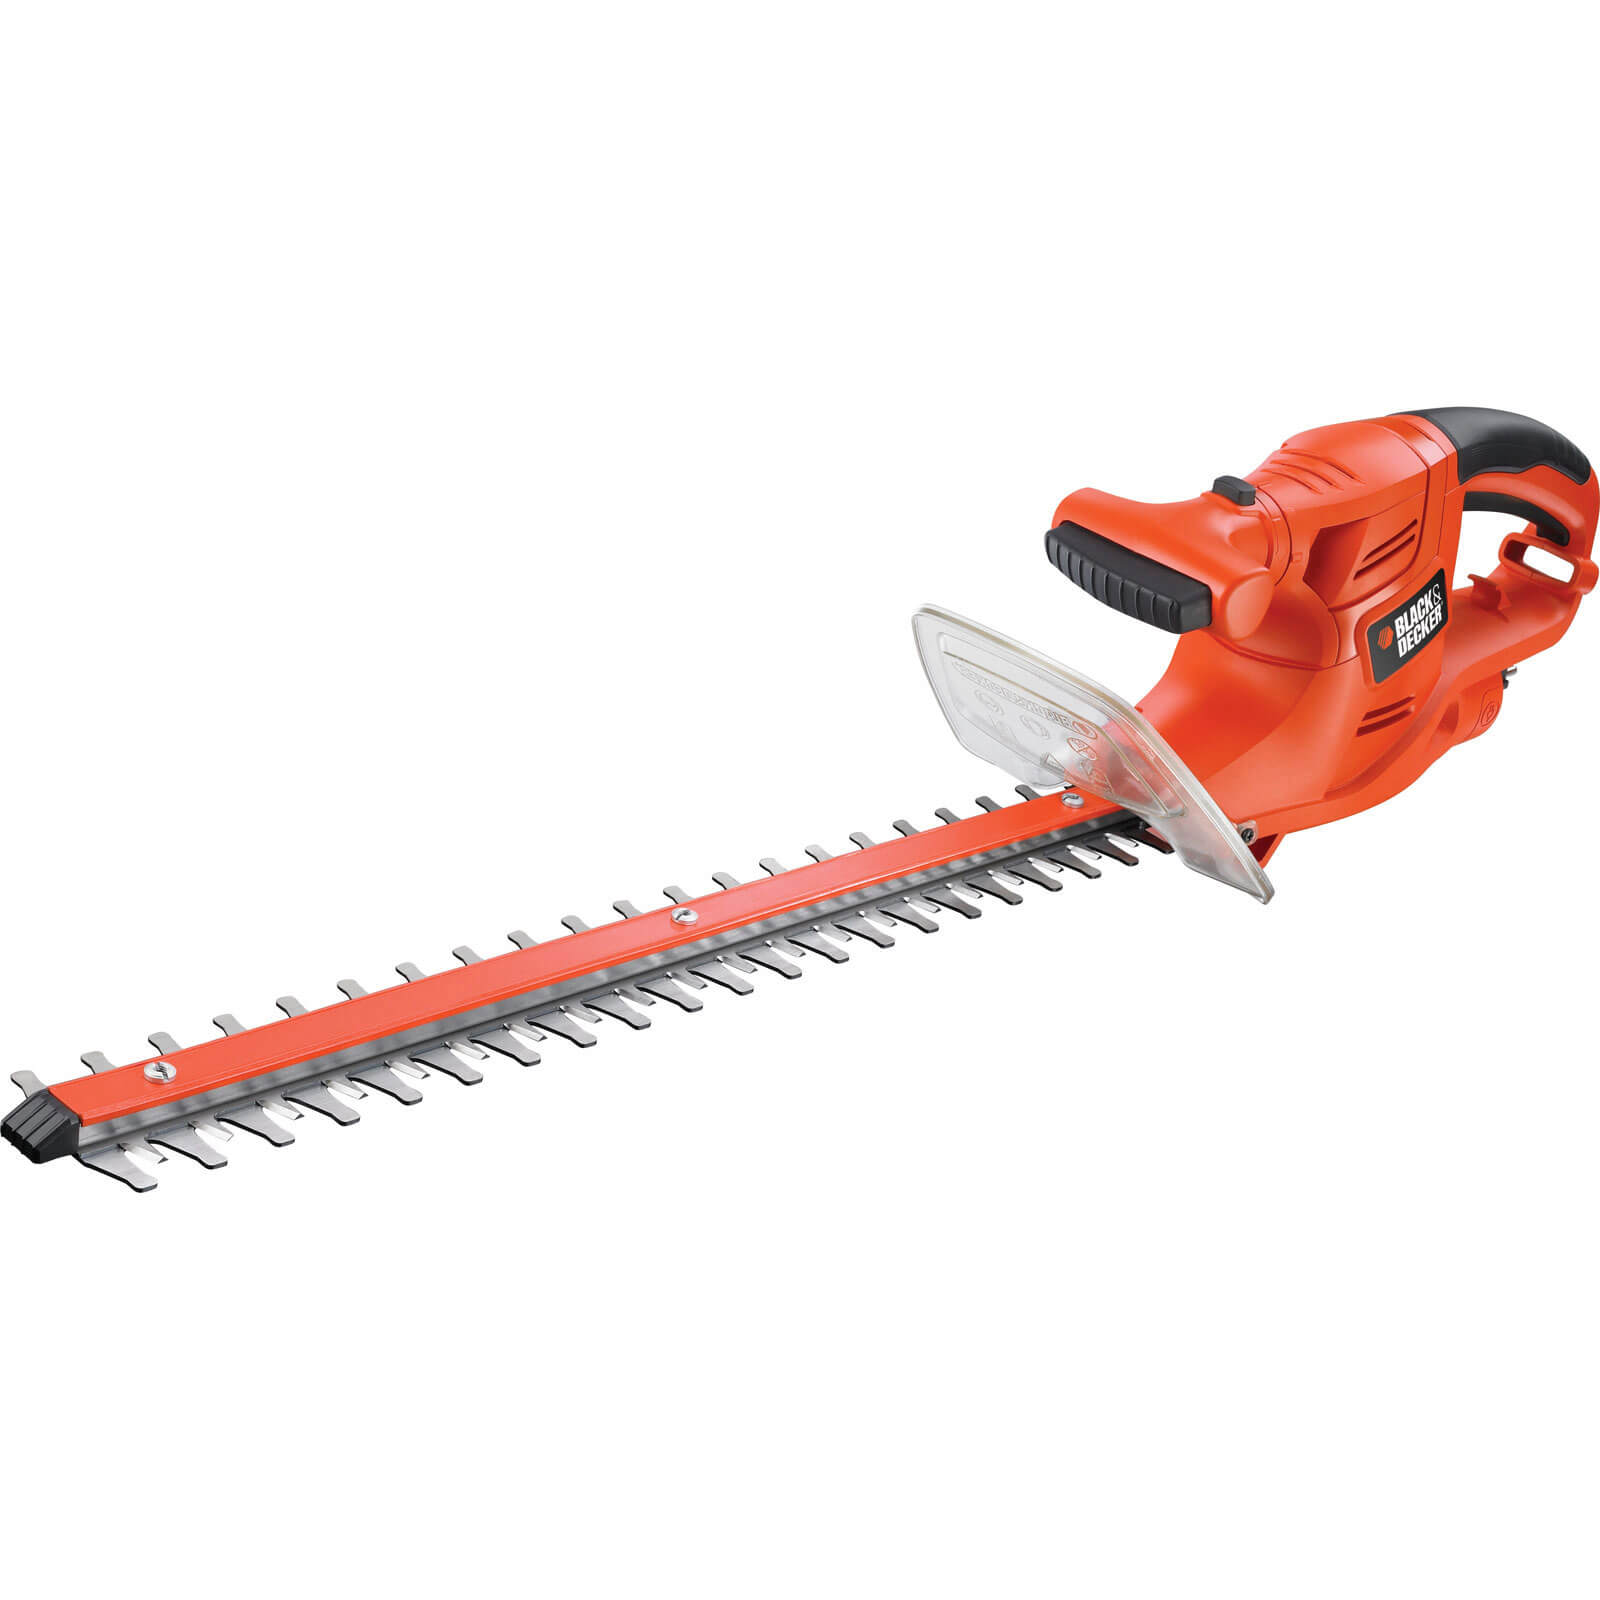 Black & Decker GT4550 Hedge Trimmer 500mm Blade Length 450w 240v Plus FREE Safety Glasses Worth £7.95